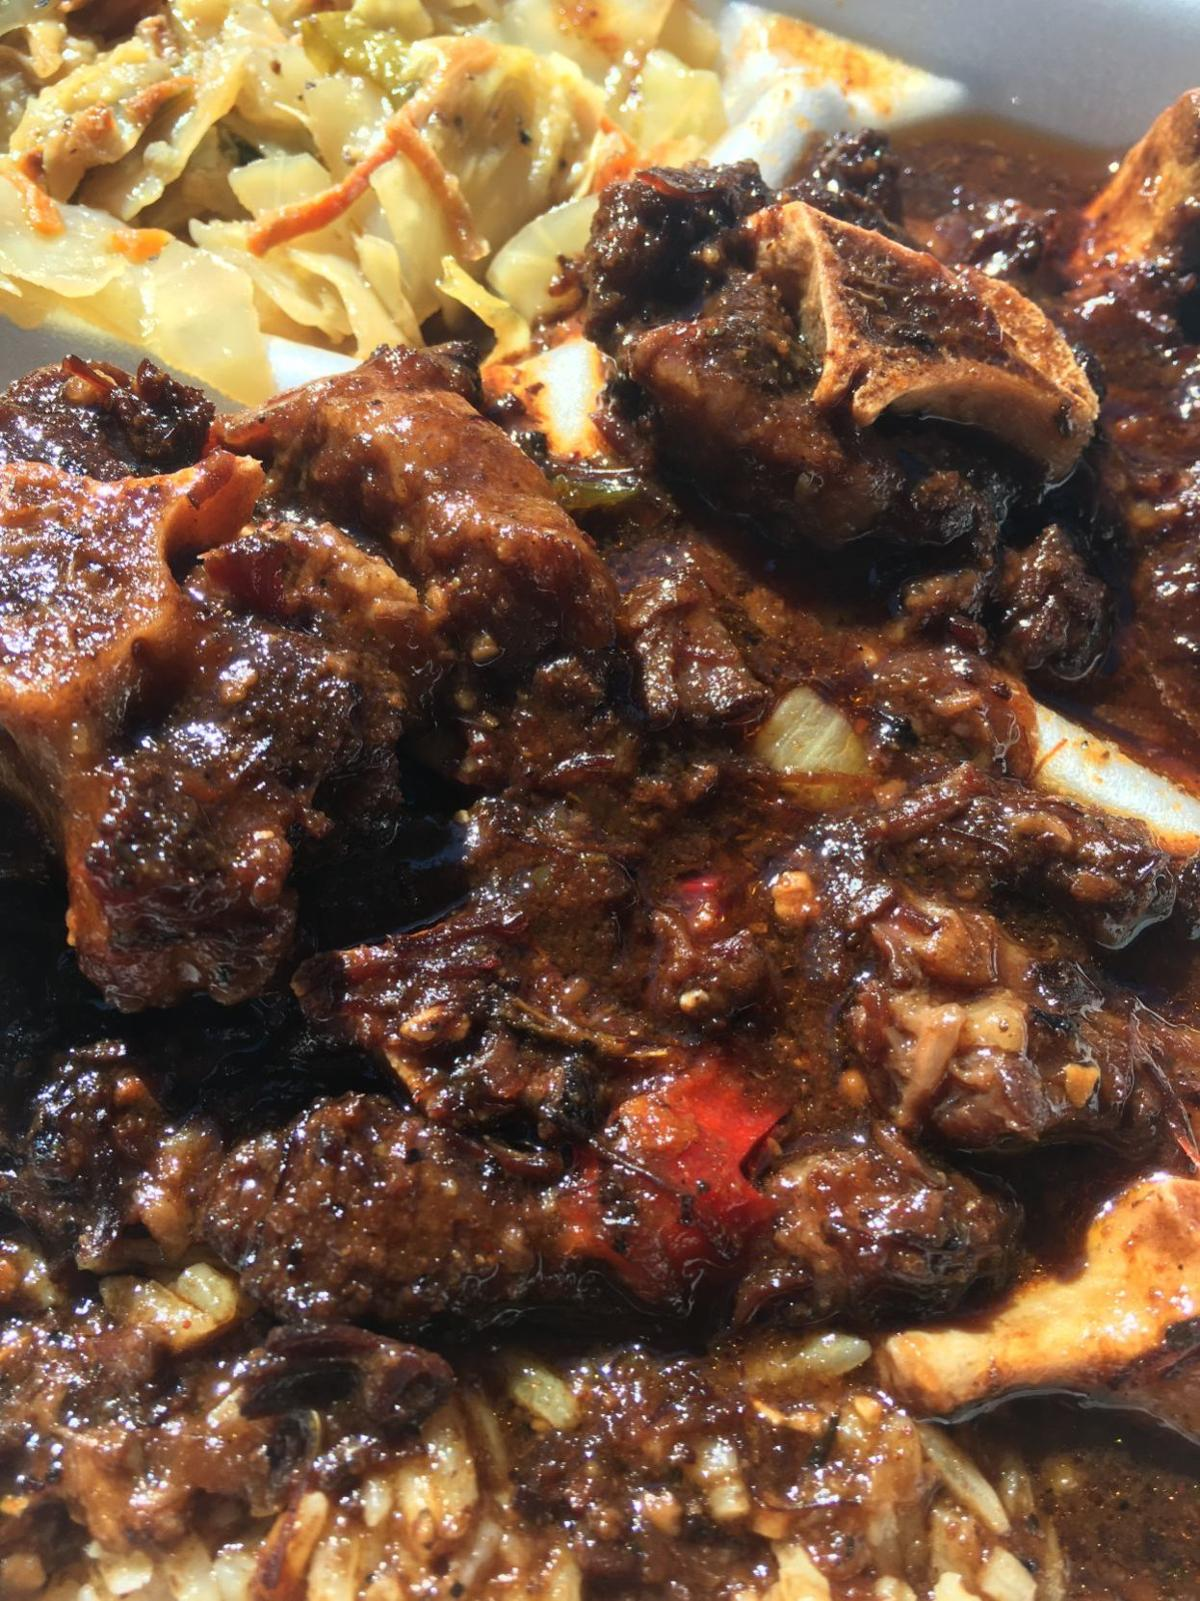 20191106-gm-food-Karubees need oxtail with cabbage and riceIMG_0654.JPG